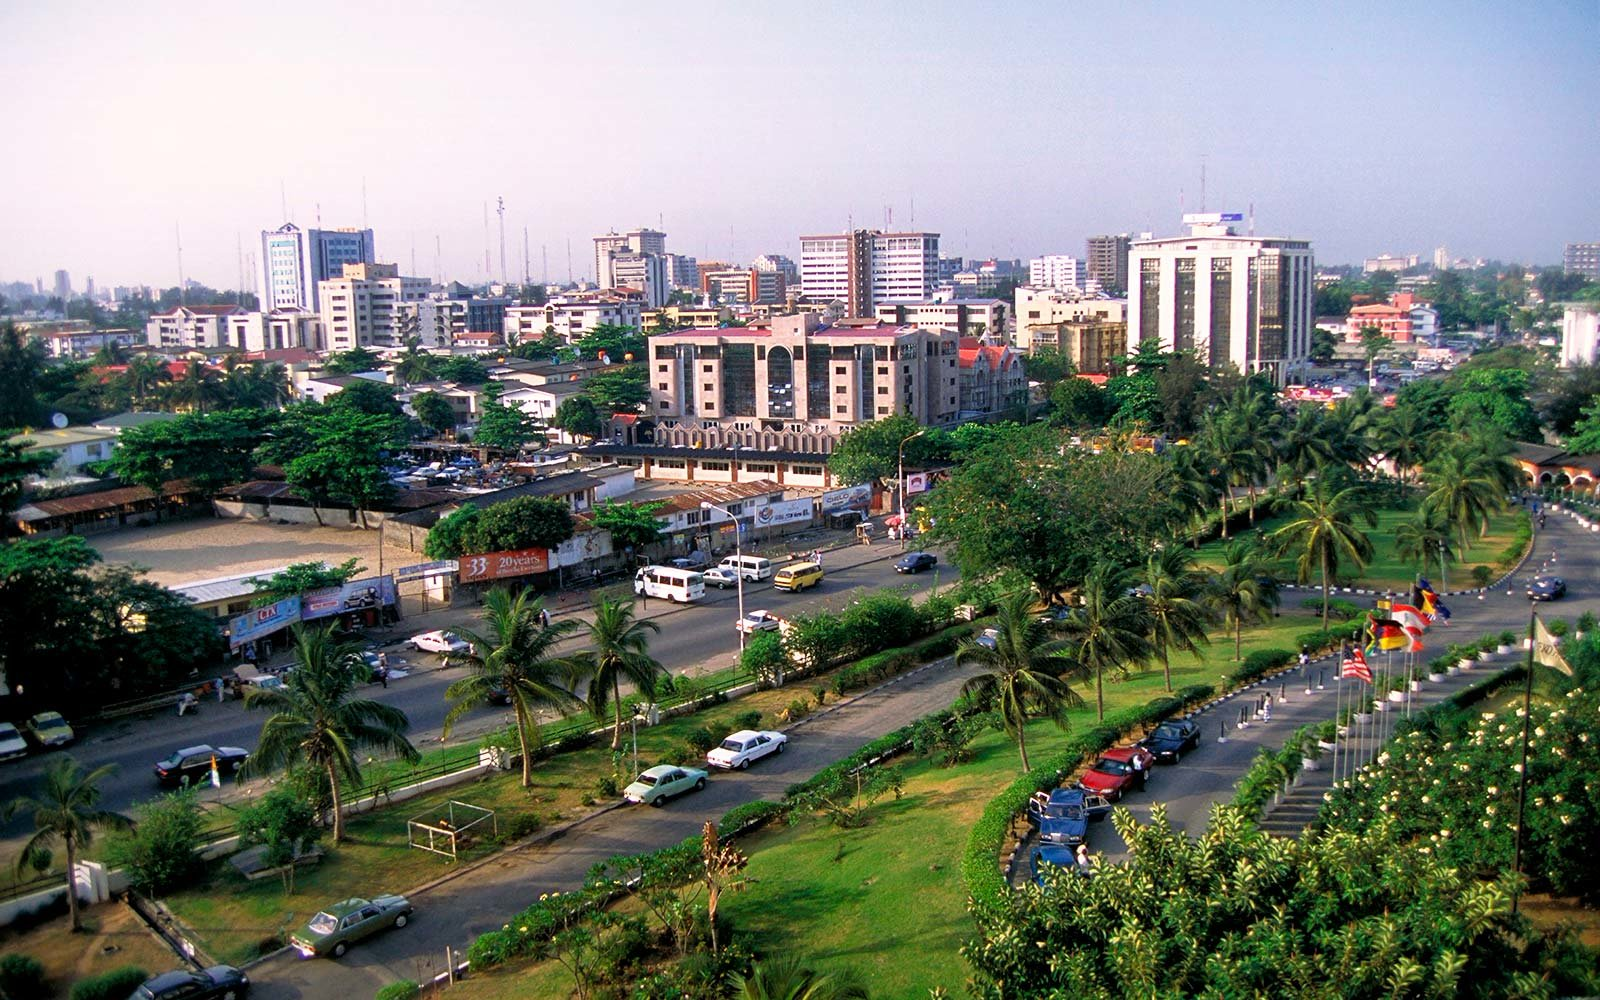 Upscale Victoria Island, one of the districts in Lagos - Nigeria's largest city with 12 million people. West Africa